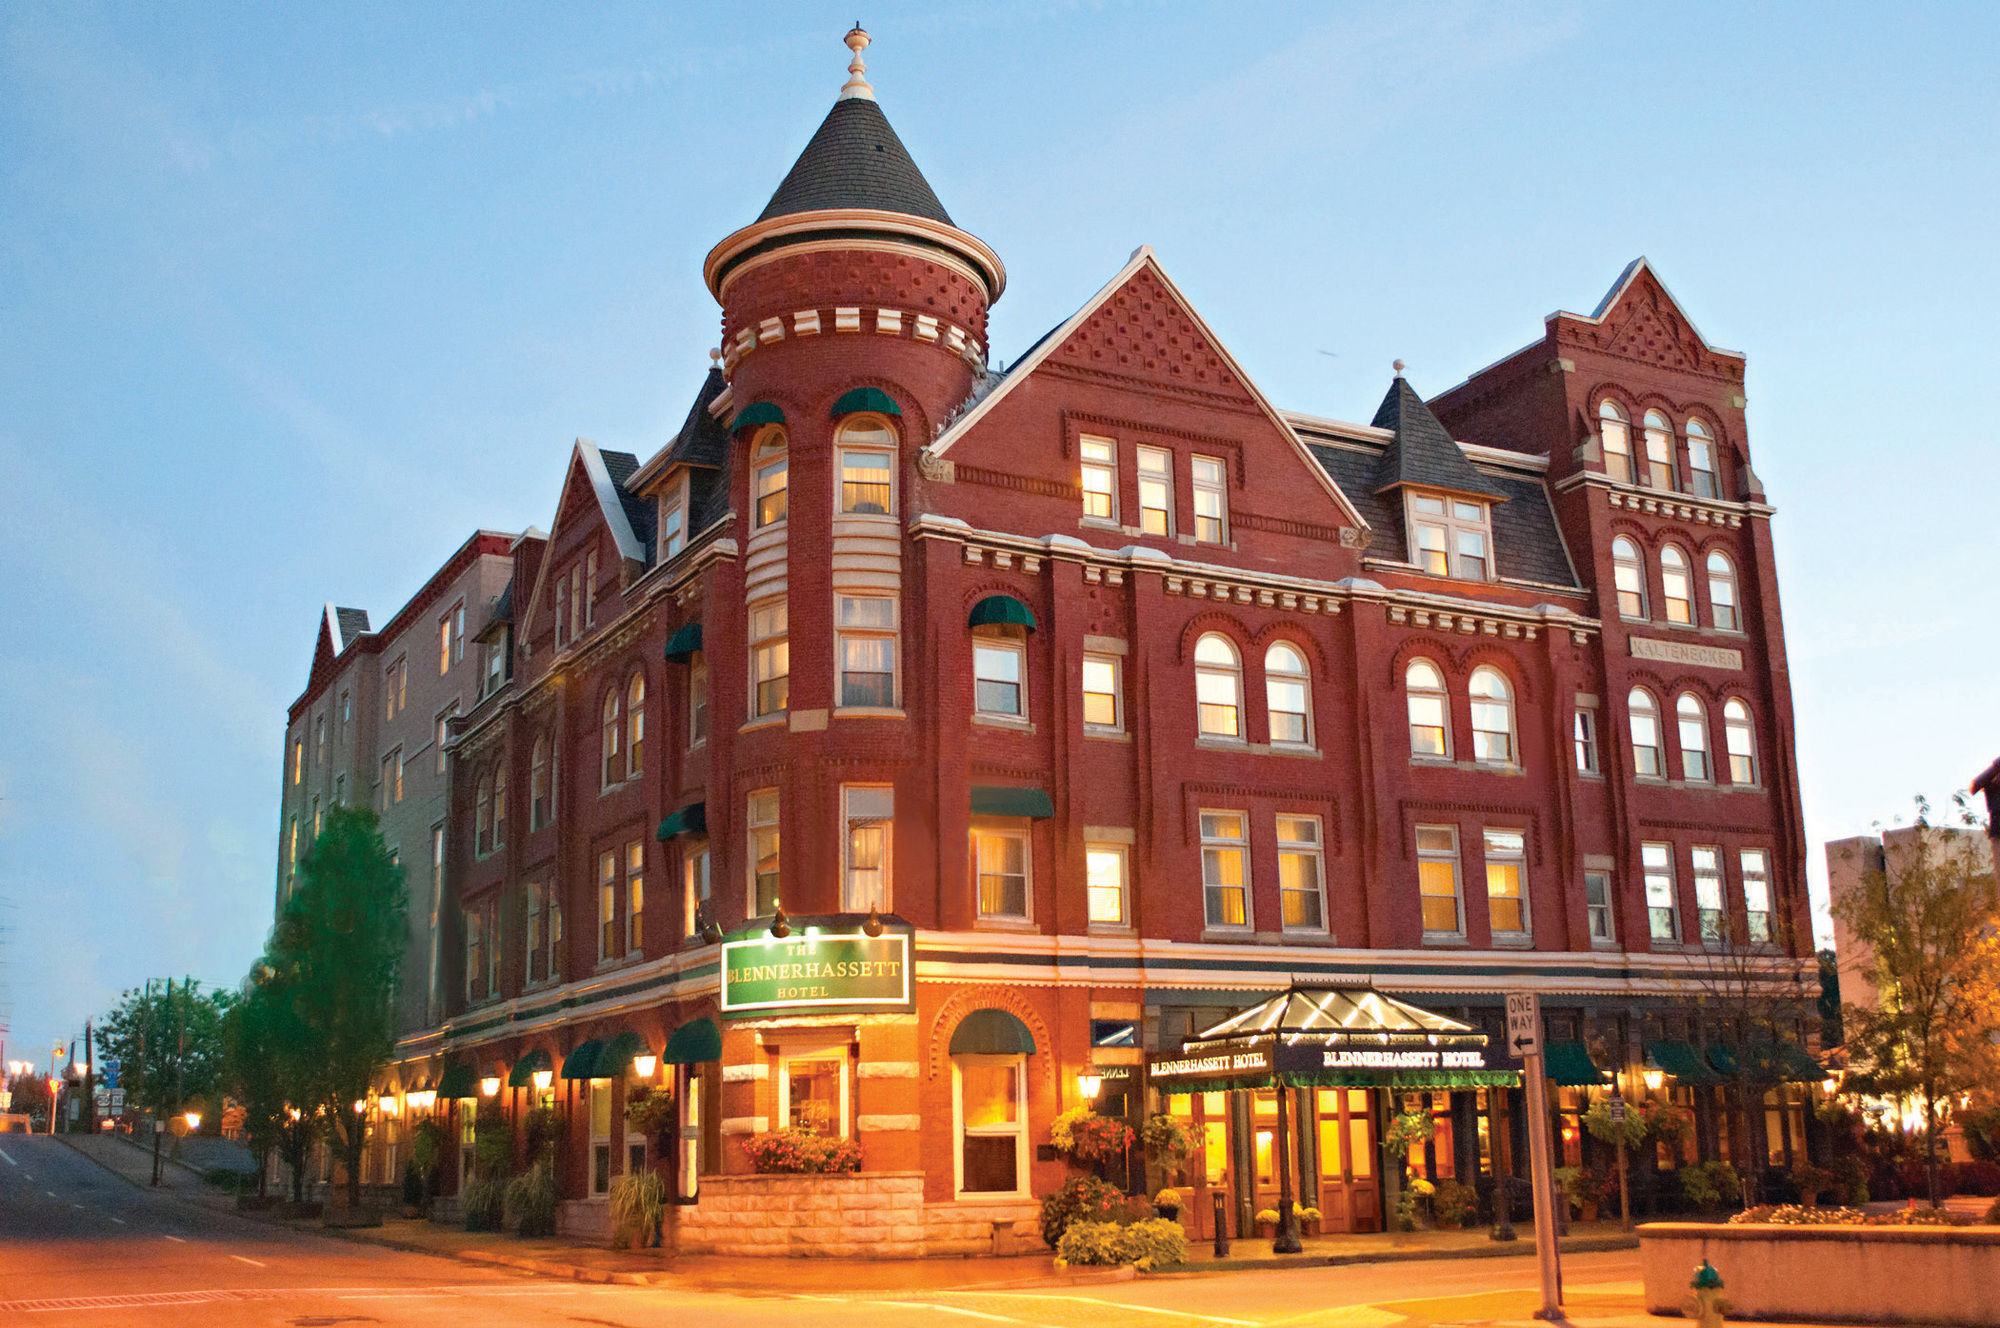 Discount Coupon For The Blennerhassett Hotel In